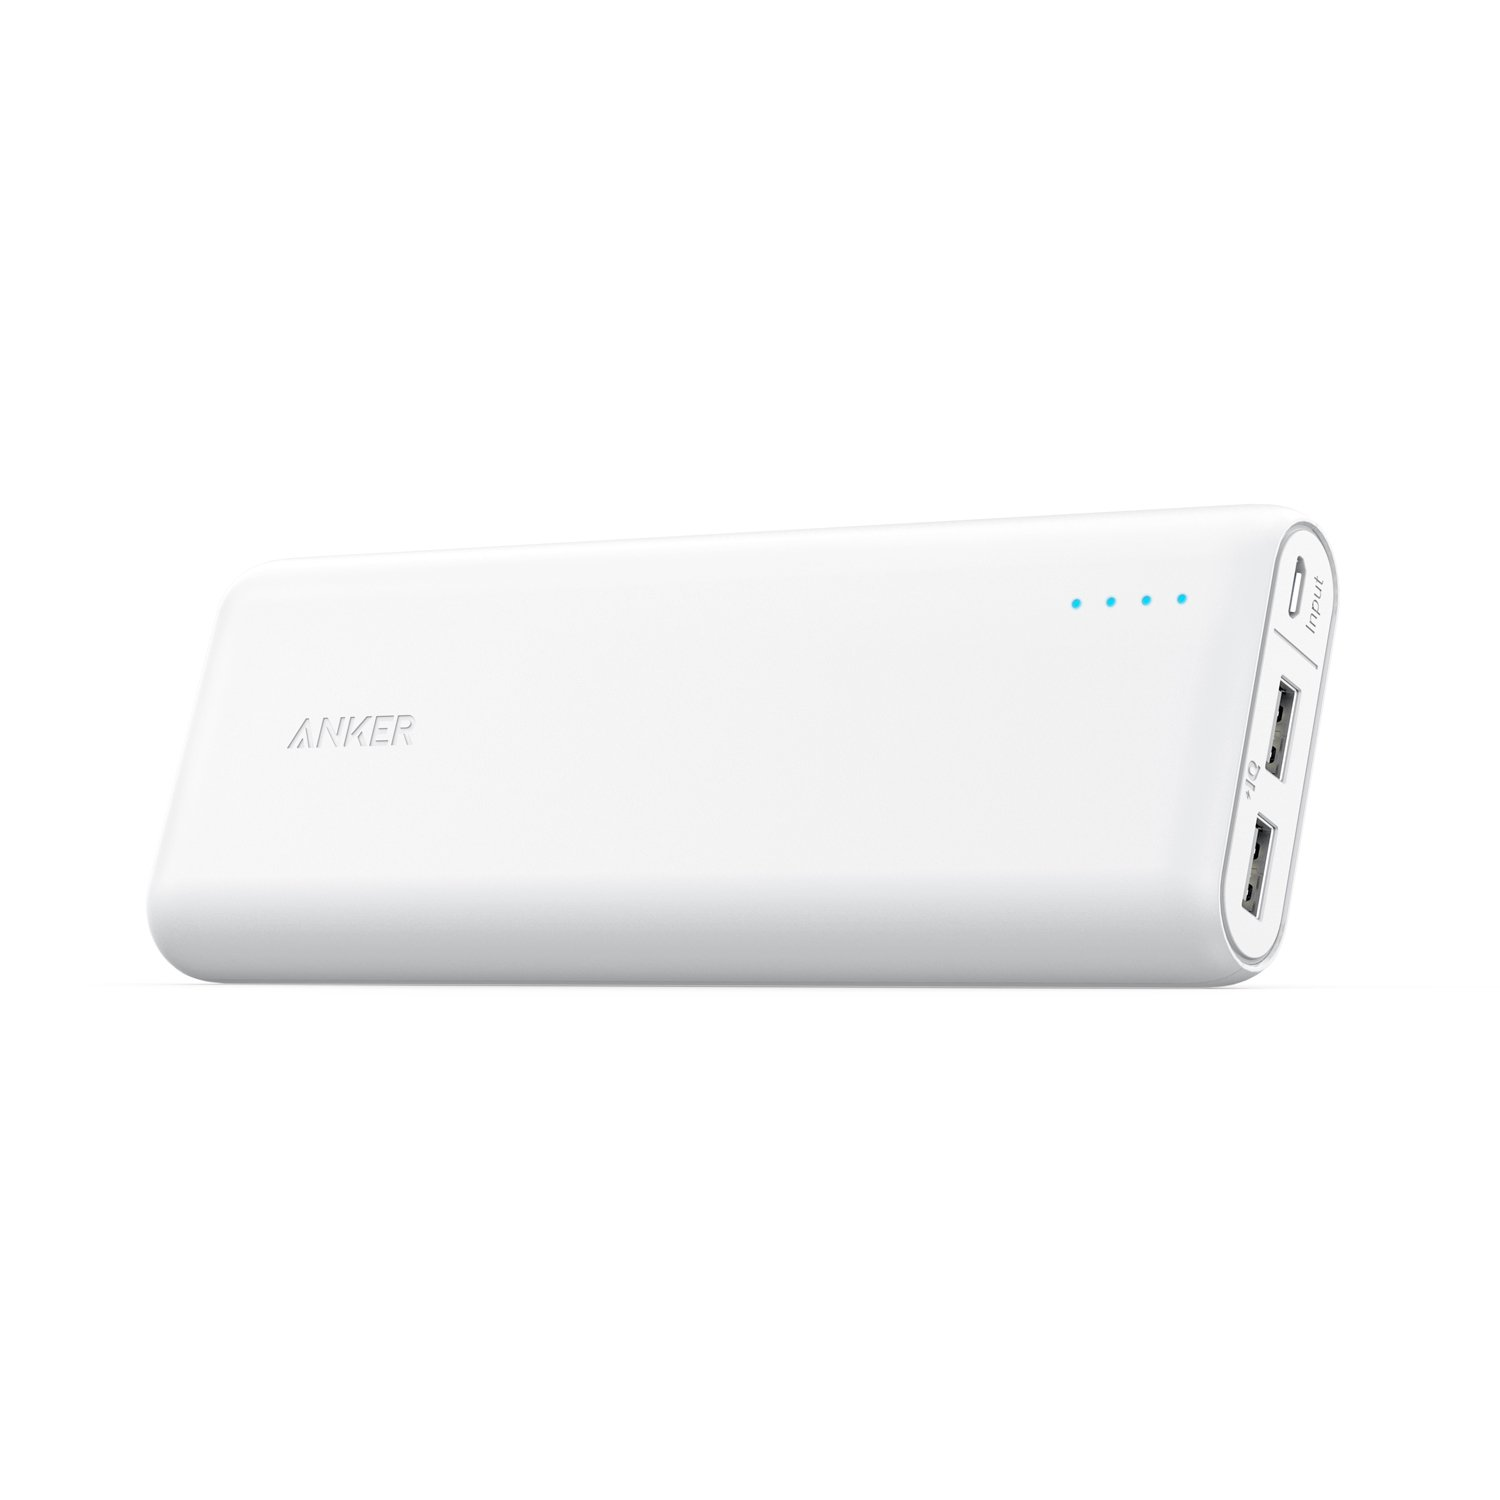 Anker PowerCore 20100 (20,100mAh 2ポート 超大容量 モバイルバッテリー) iPhone&Android対応 マット仕上げ